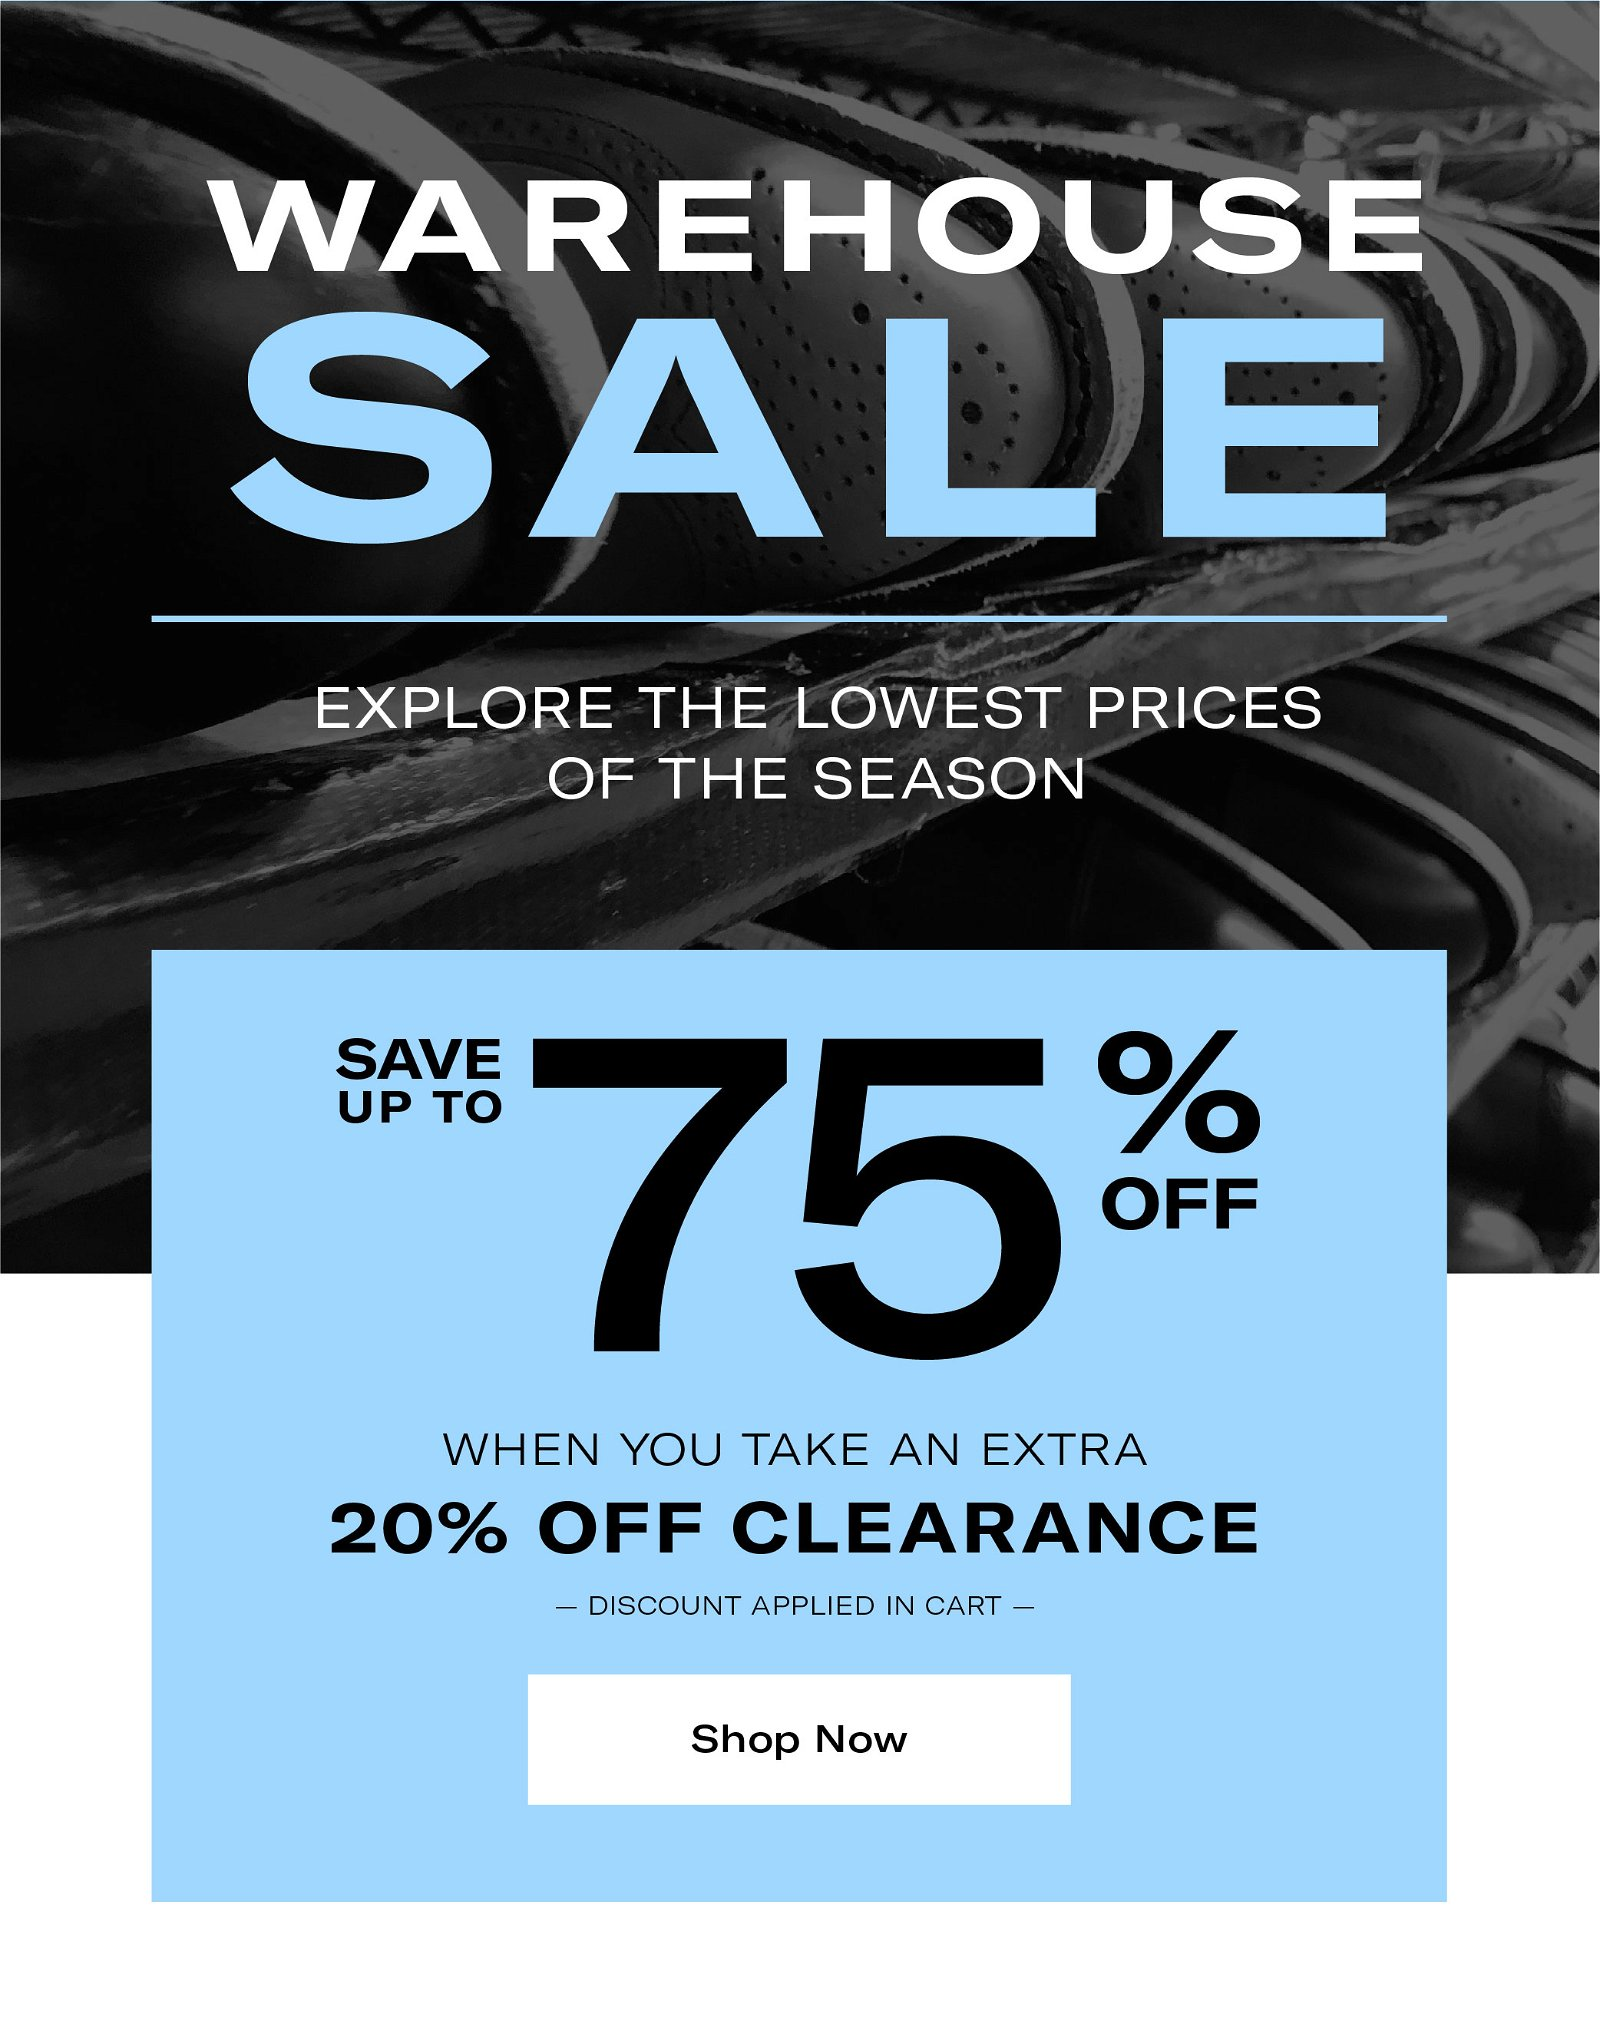 Warehouse Sale - Explore the Lowest Prices of the Season. Save Up To 75% Off When You Take an Extra 20% Off Clearance. Discount applied in cart.